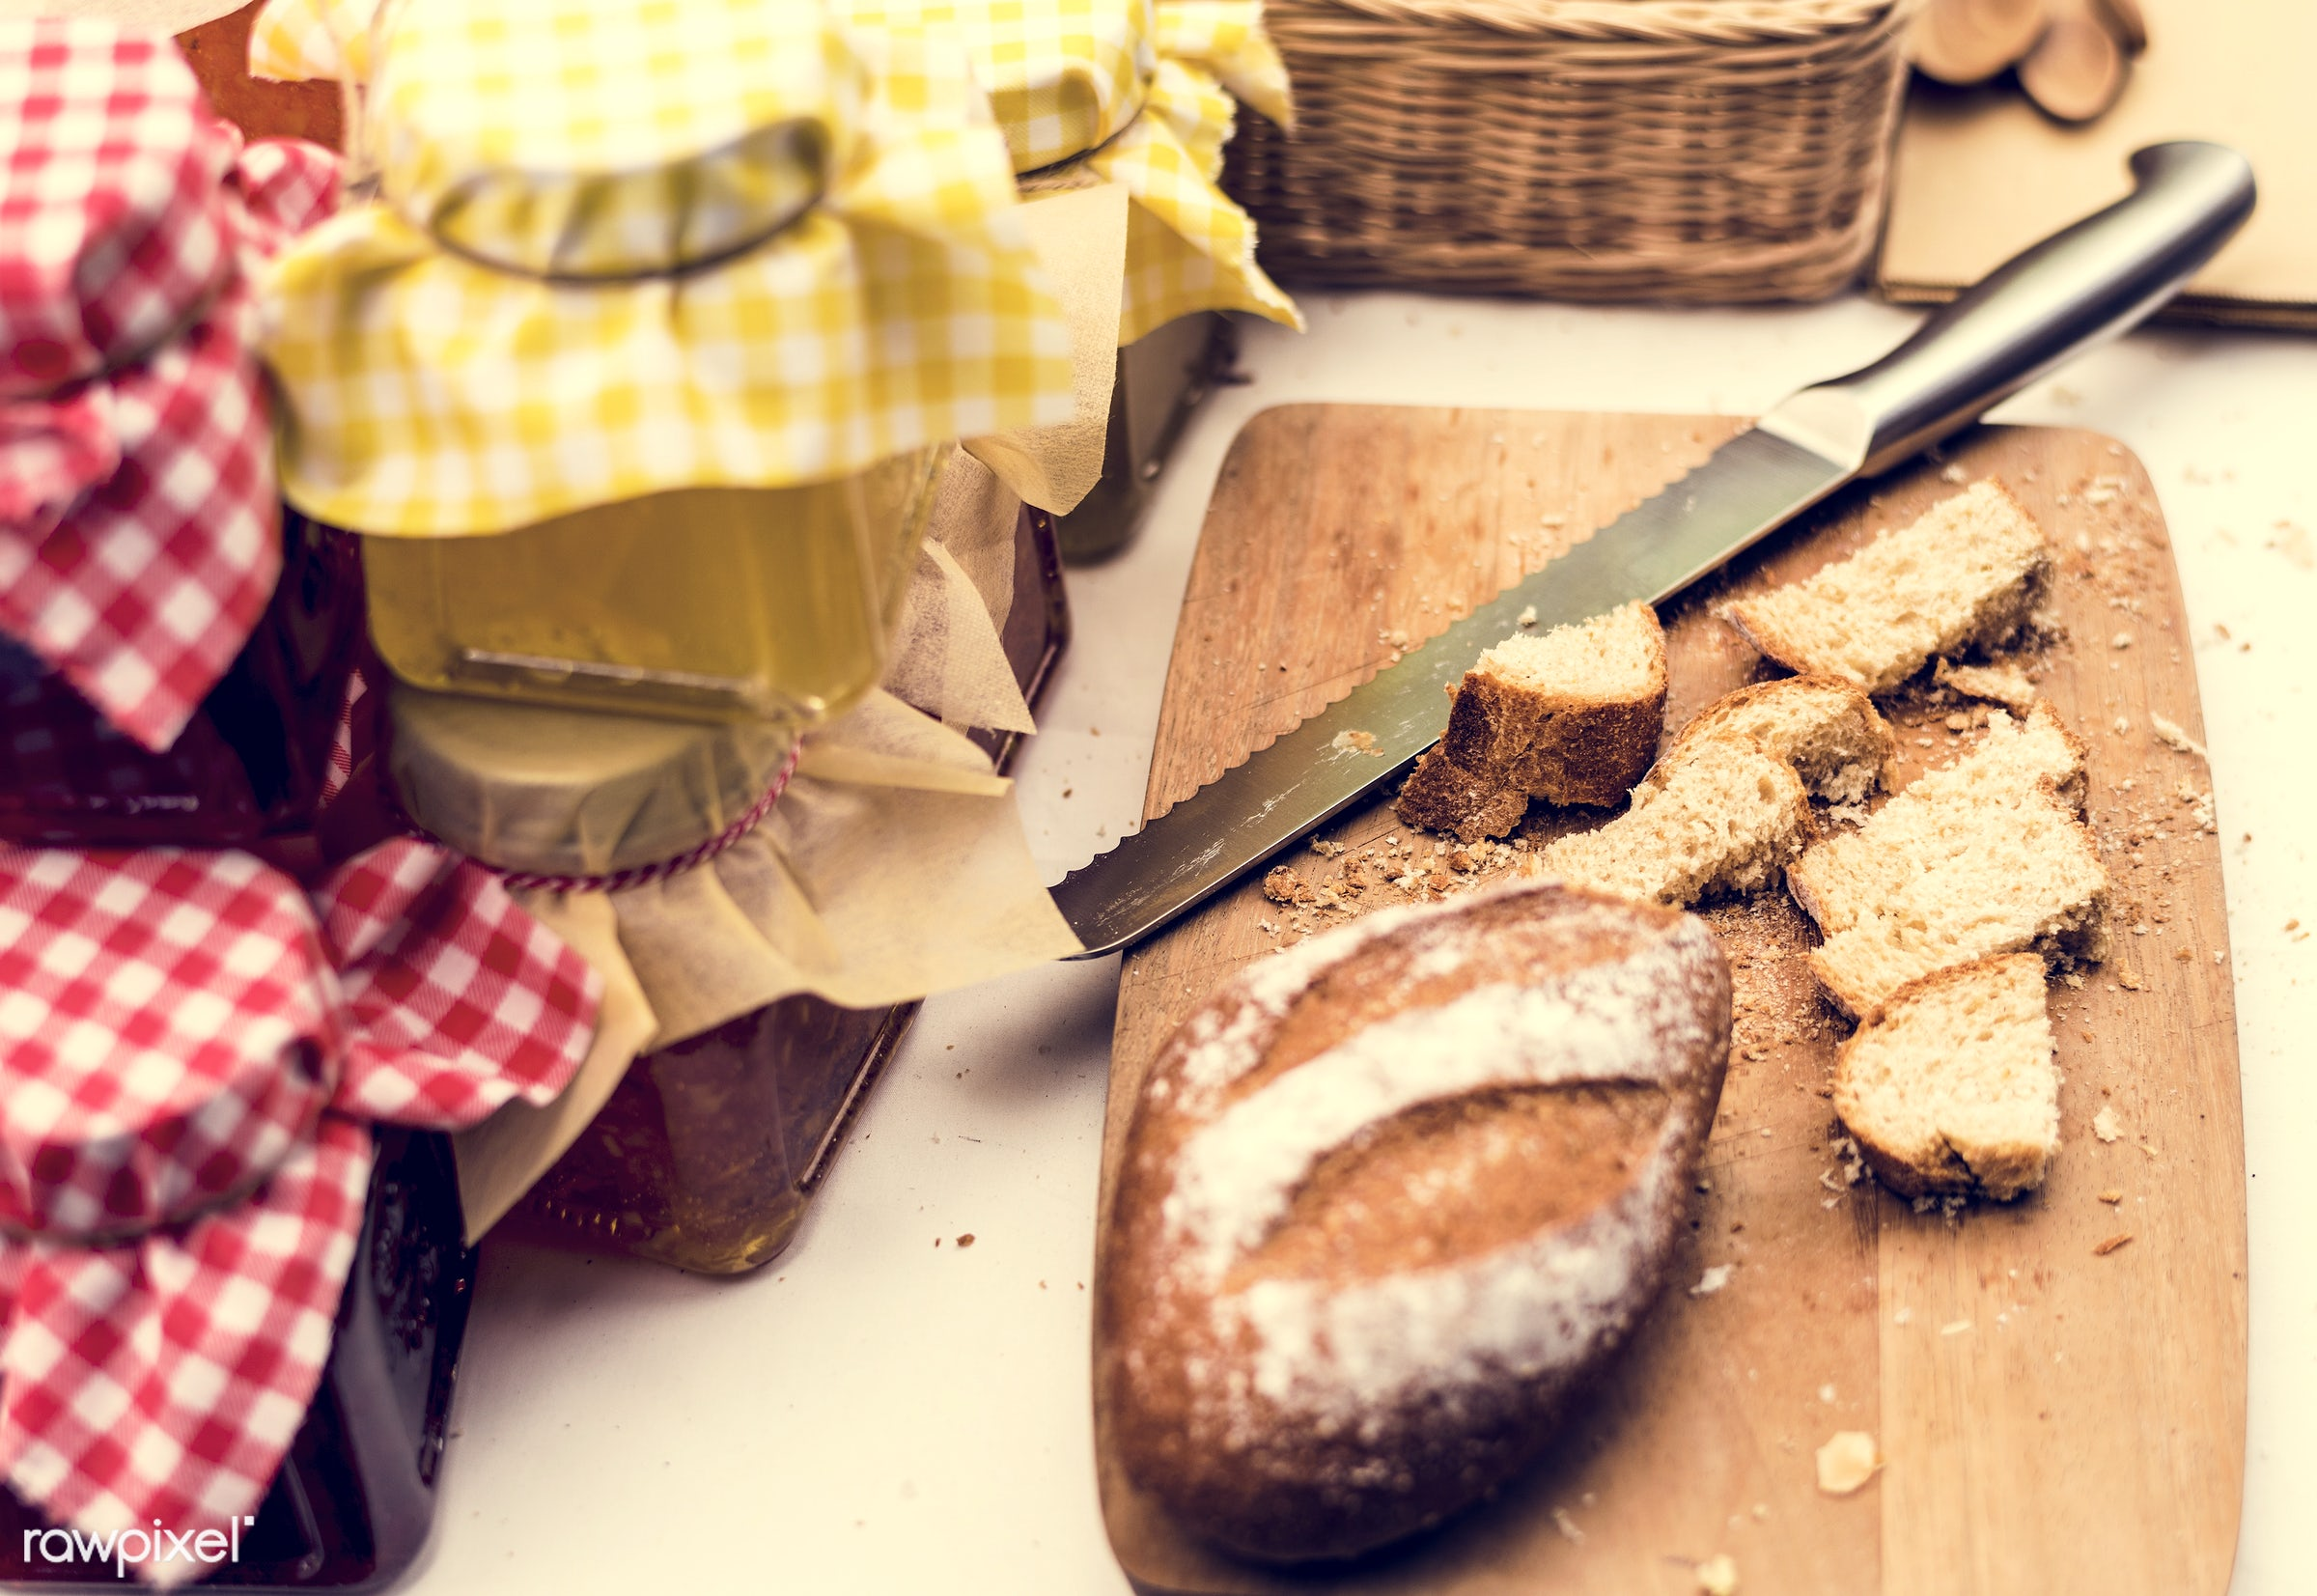 shop, cuisine, small business, variation, patissier, homemade, cute, baked, bread house, bakery, dough, jar, bread, bread...